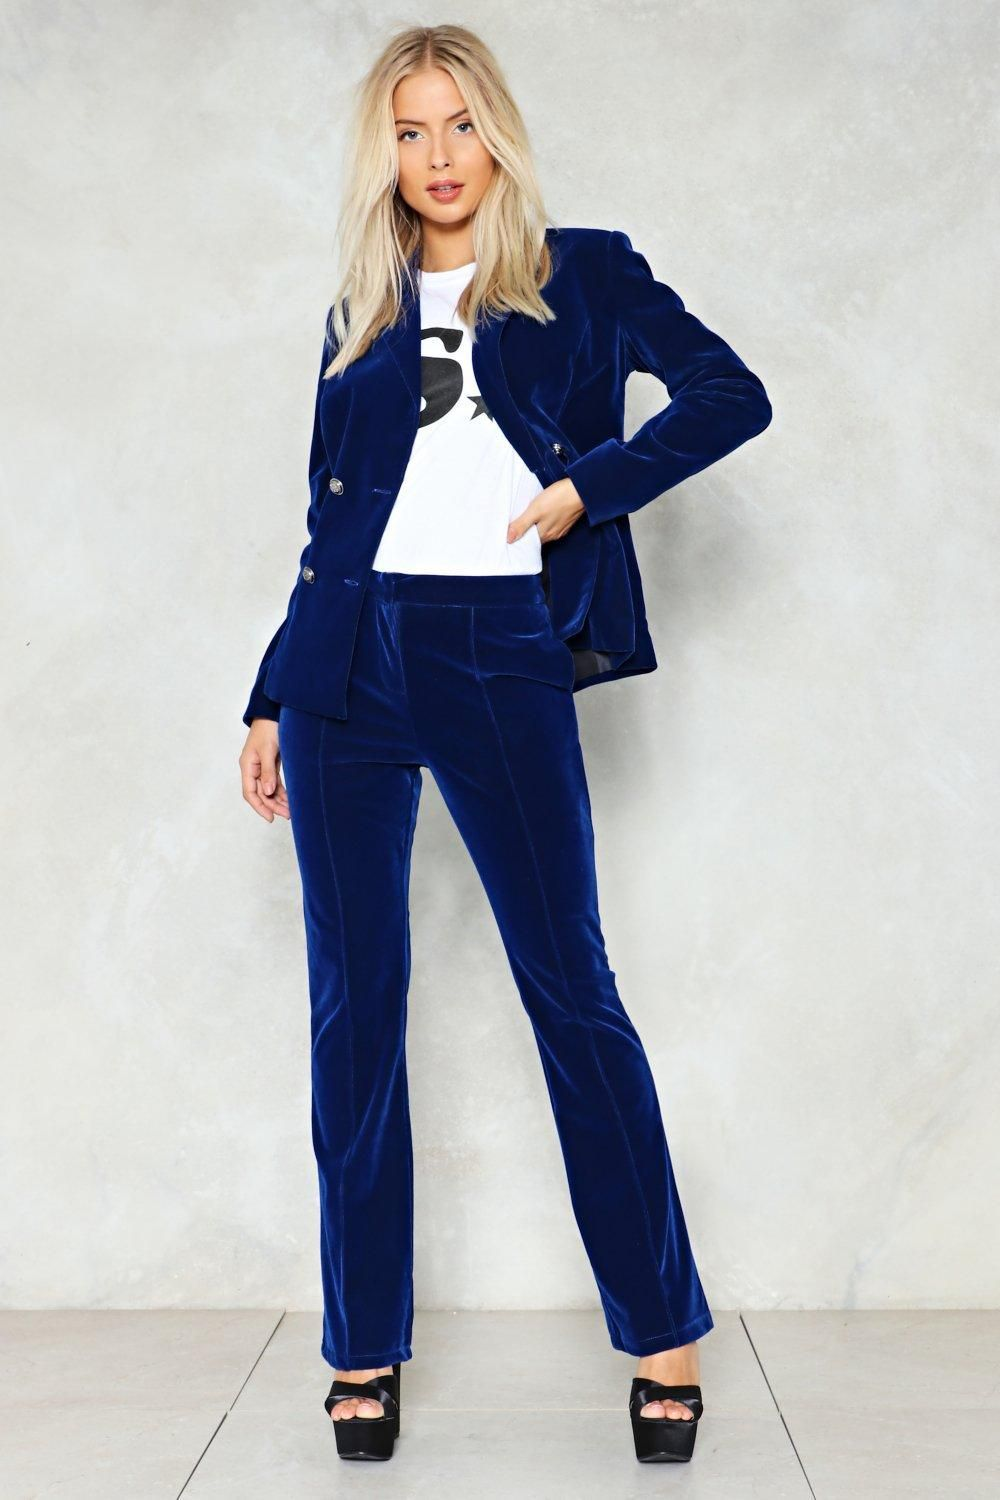 98798a0ed56 16 Jumpsuits and Suits That Will Make You Totally Stand Out on Prom Night